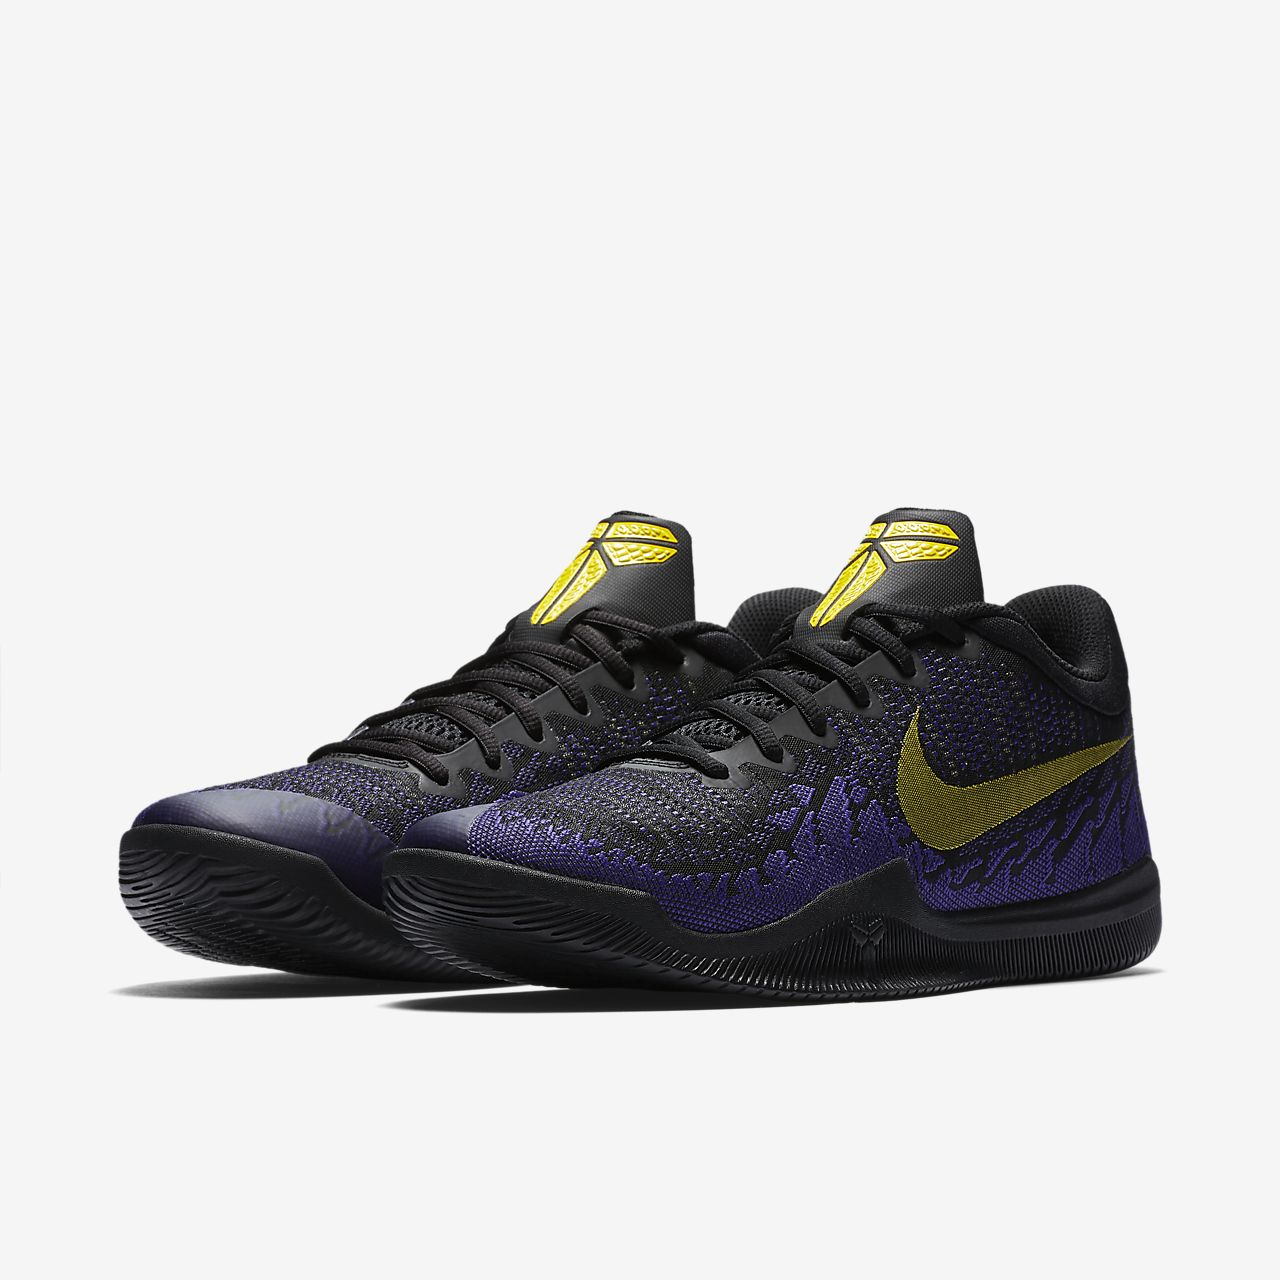 ... Nike Mamba Rage Men's Basketball Shoe